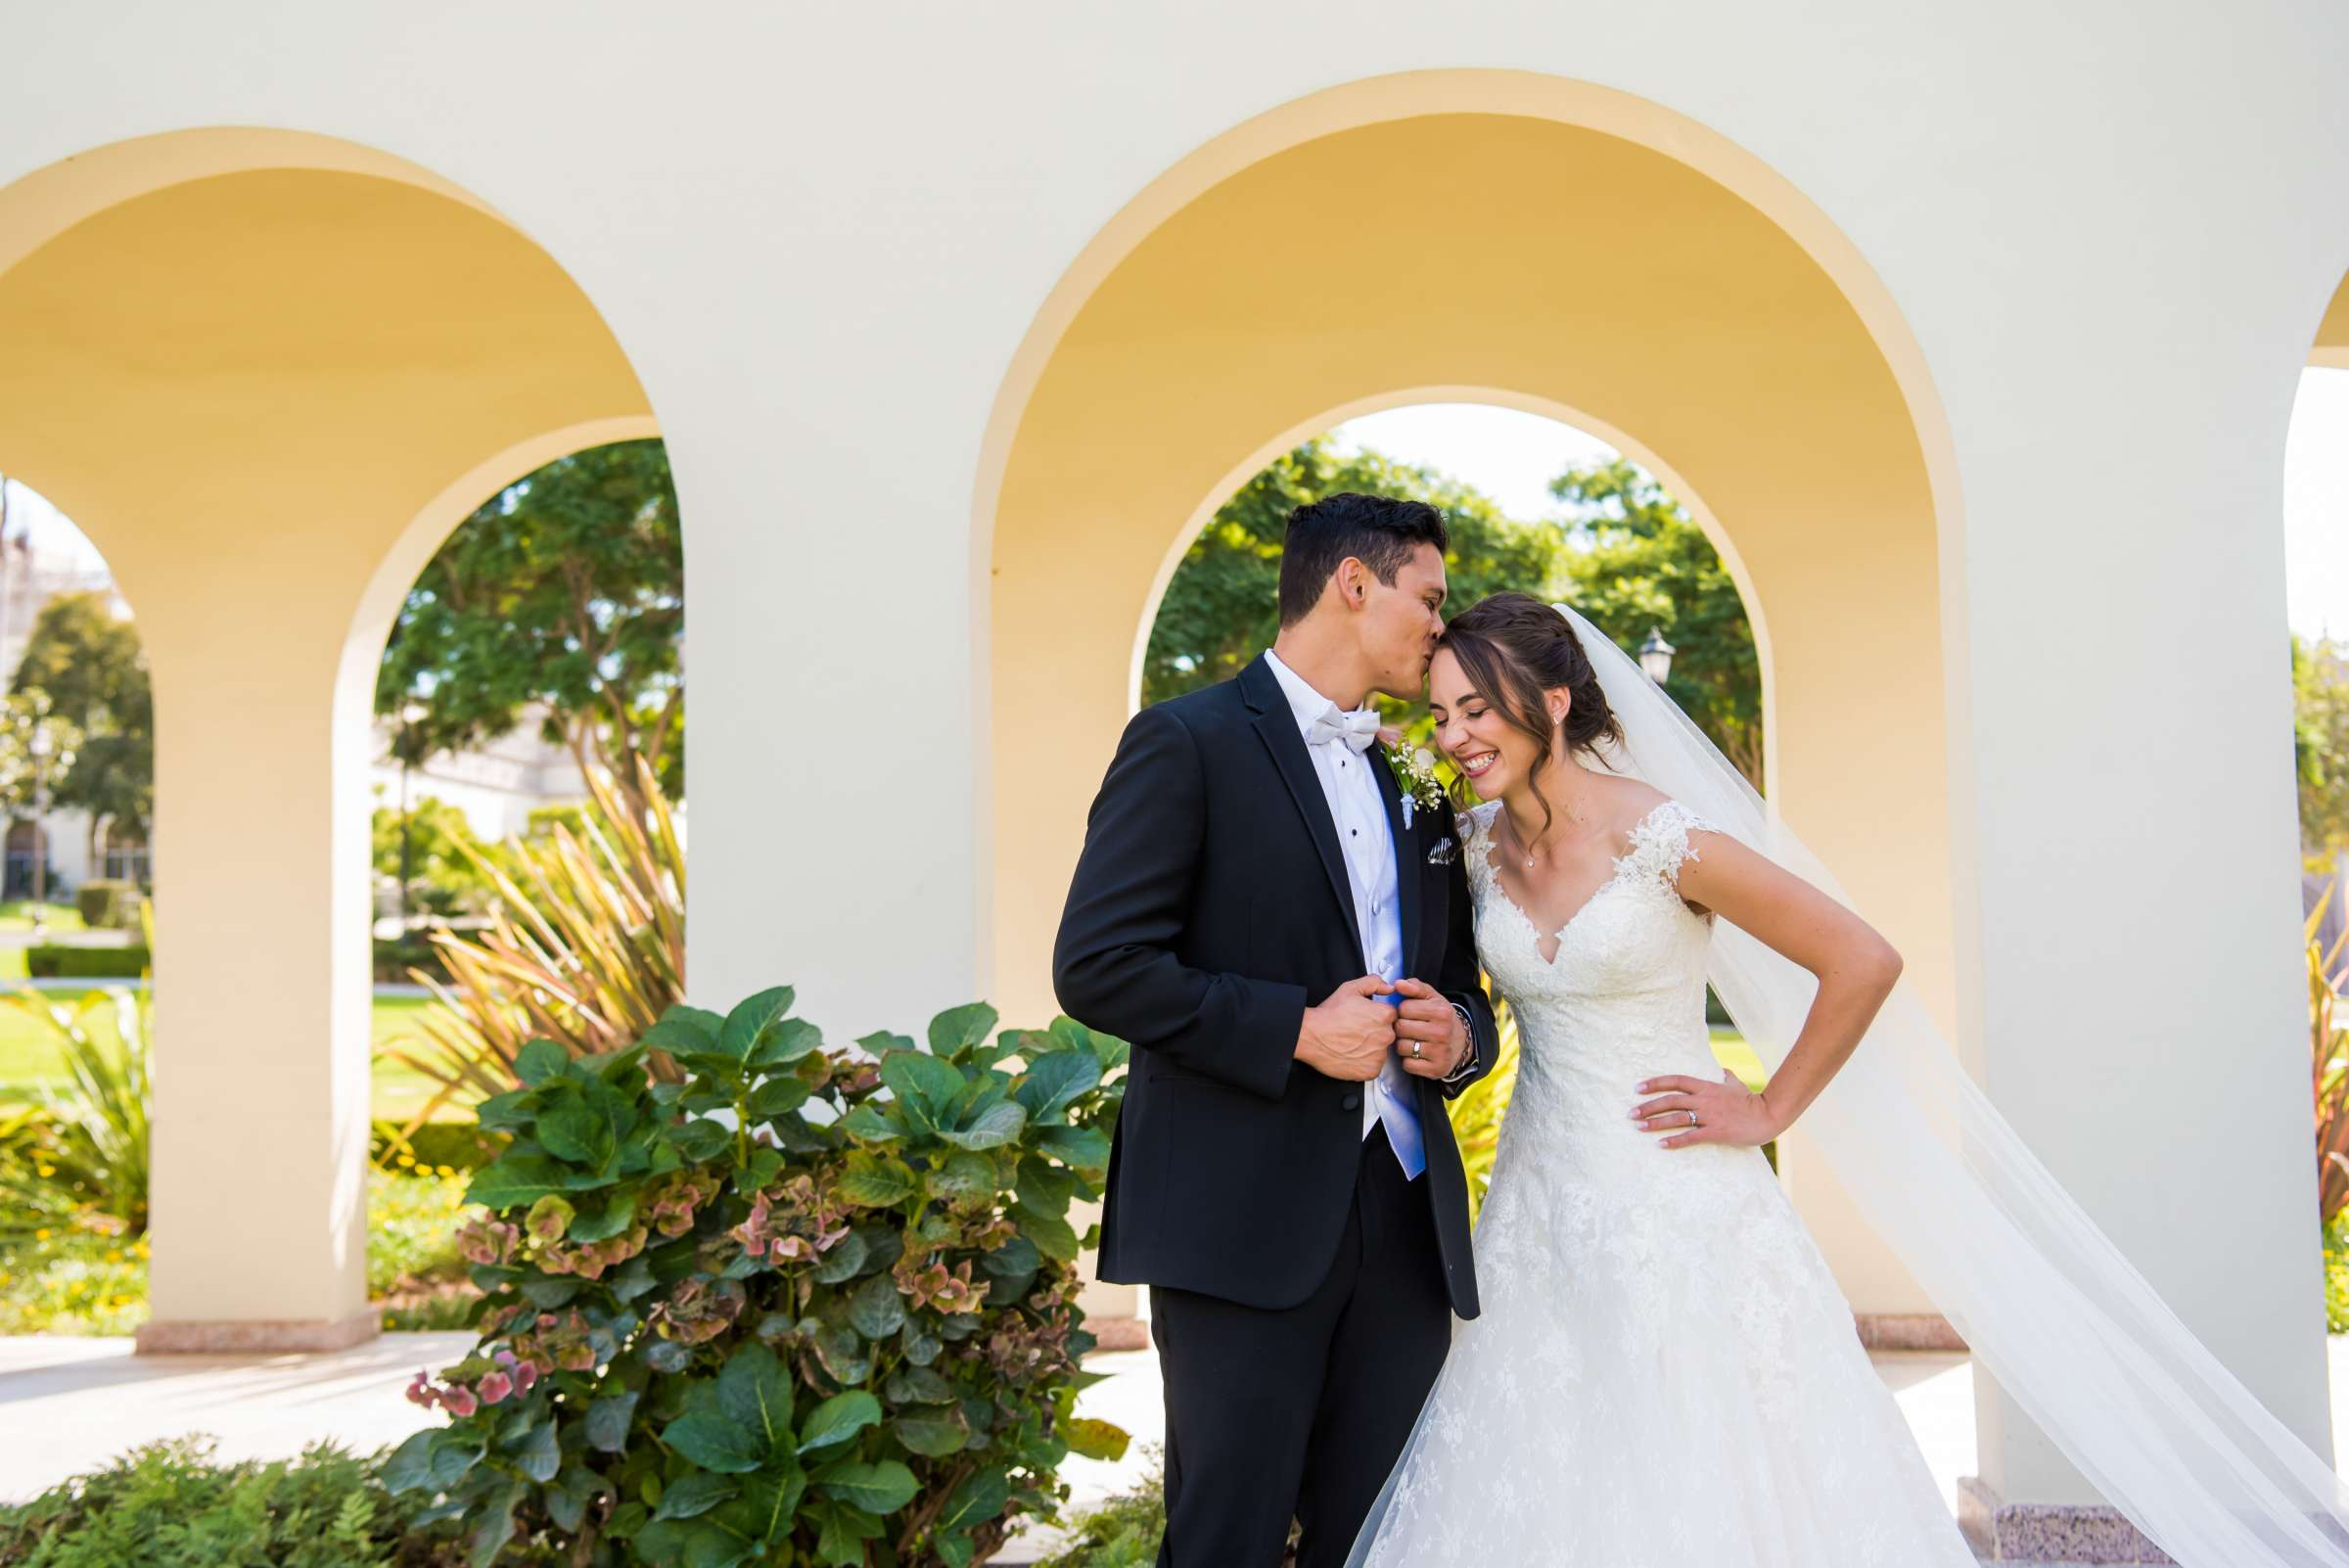 The Immaculata Wedding, Arianna and Jonah Wedding Photo #68 by True Photography